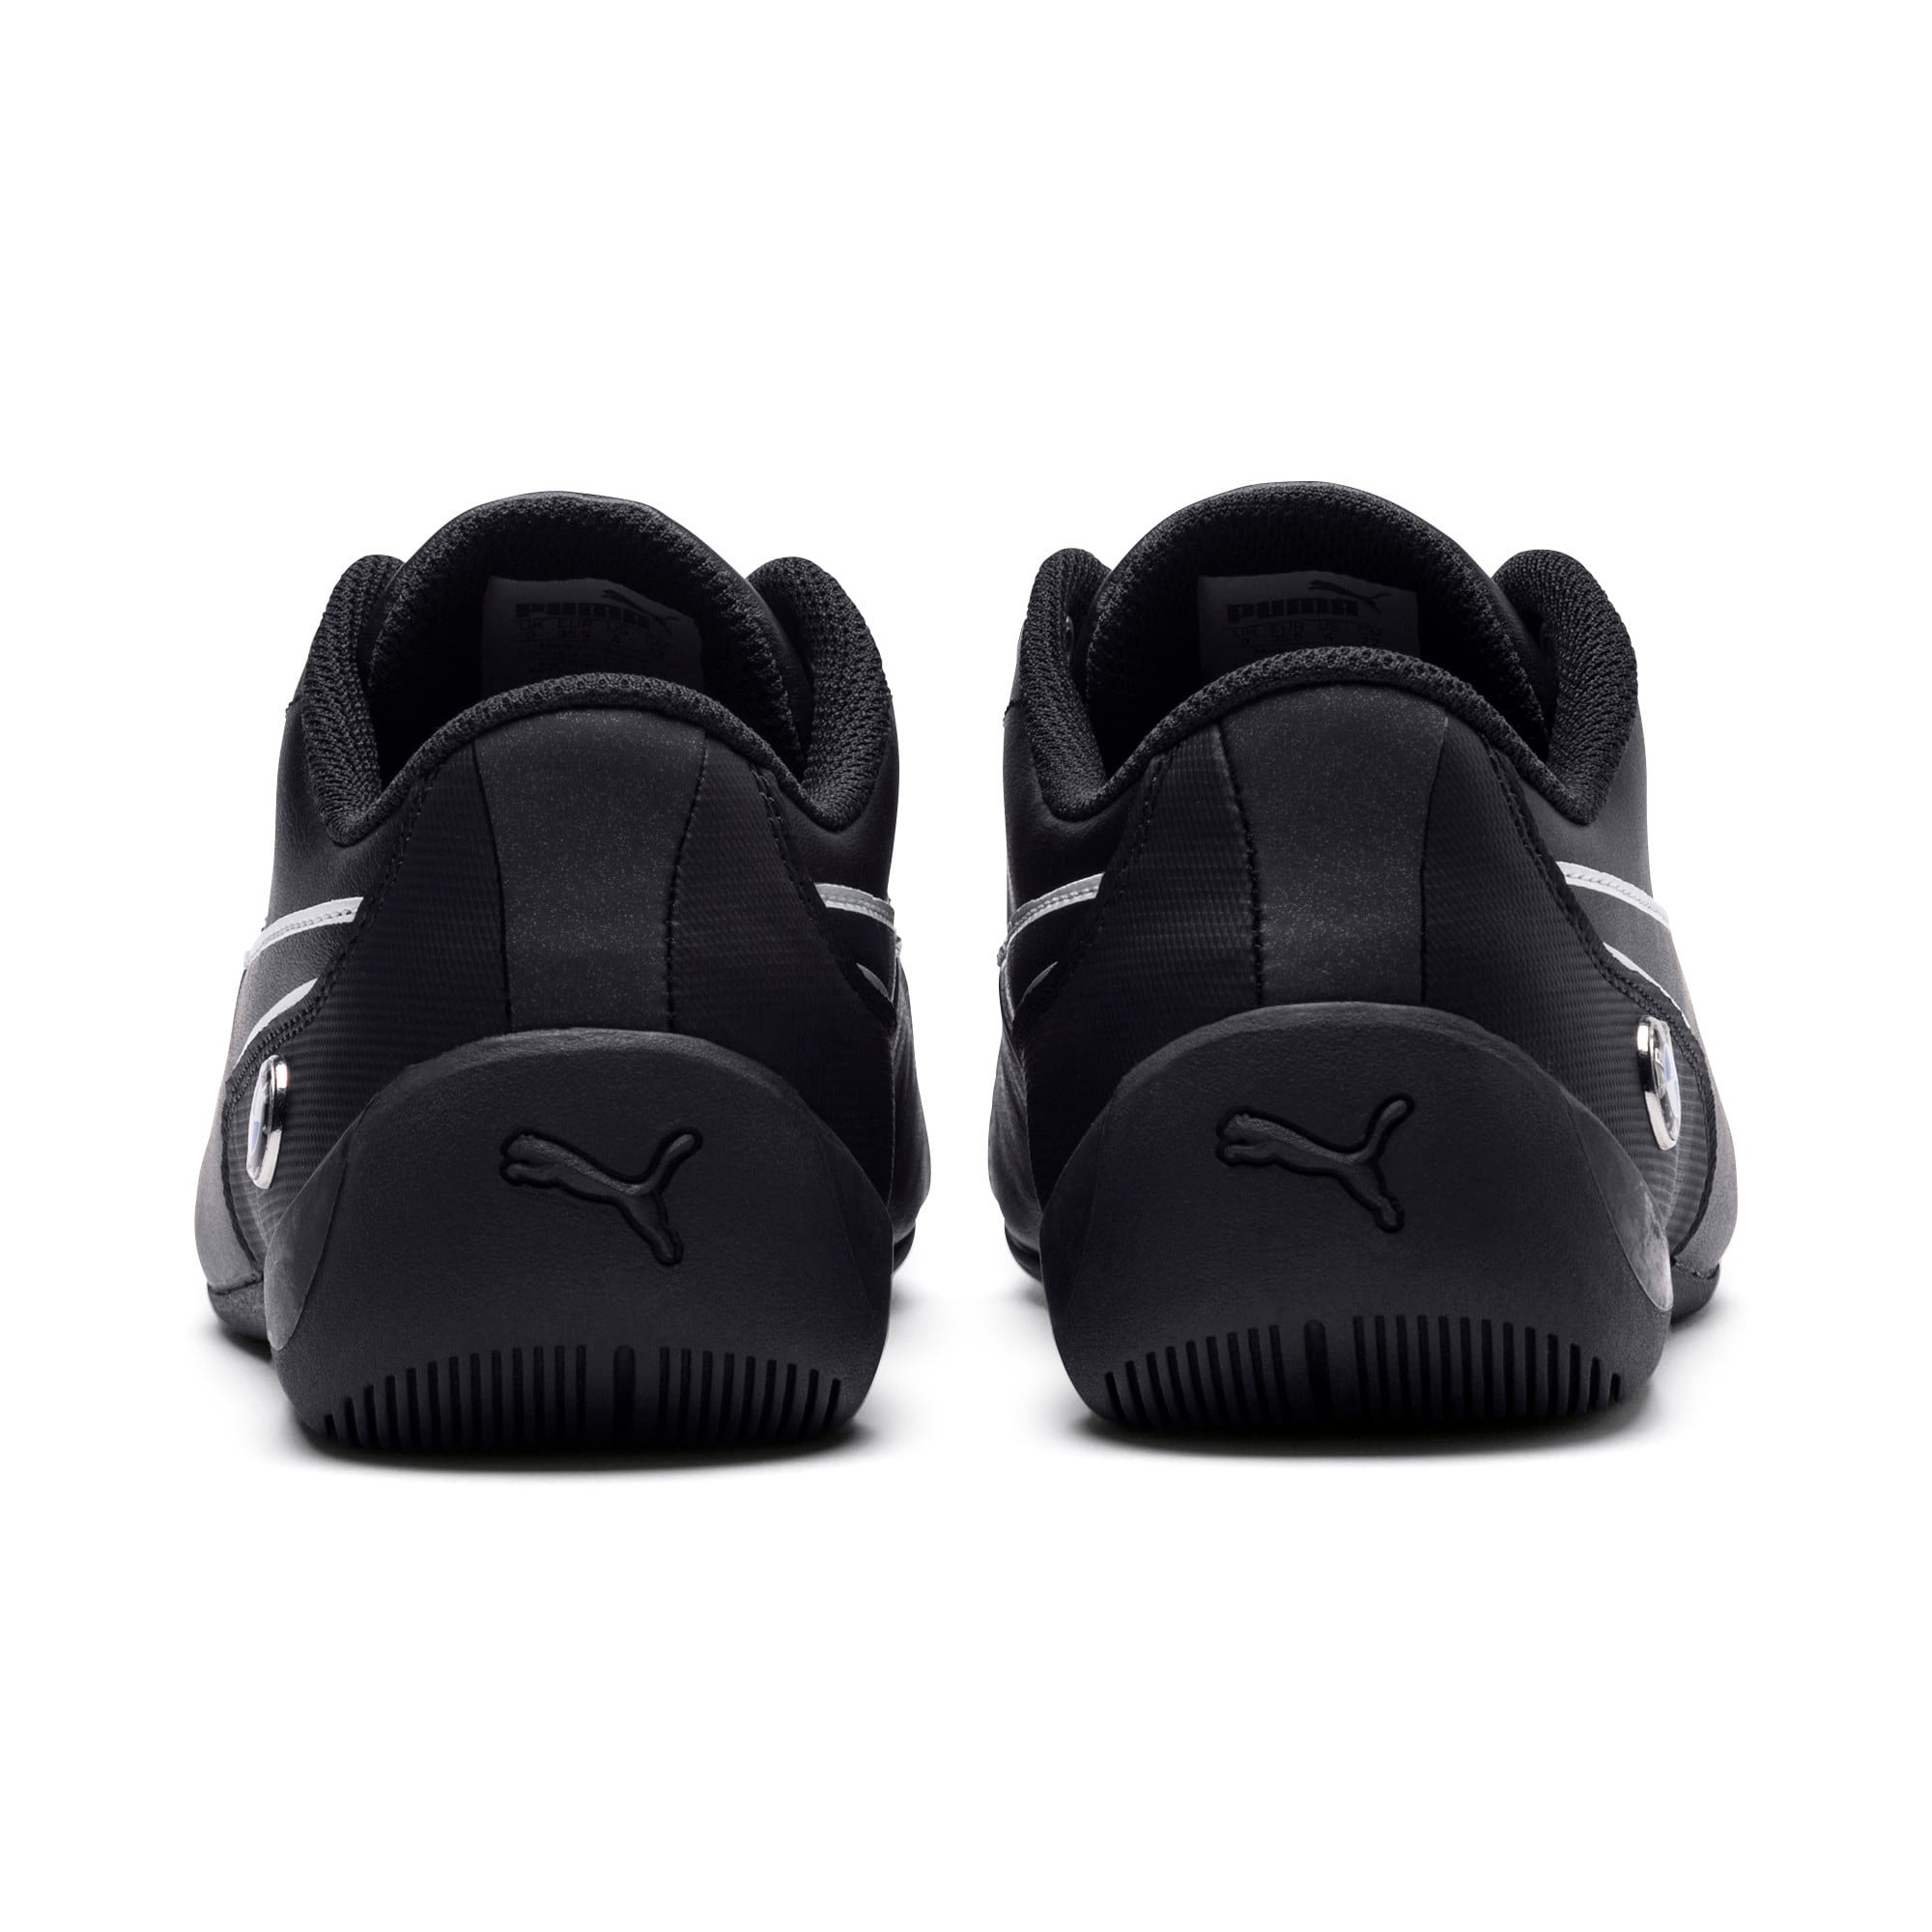 Thumbnail 4 of BMW Motorsport Drift Cat 7 Kids' Trainers, Anthracite-Anthracite, medium-IND